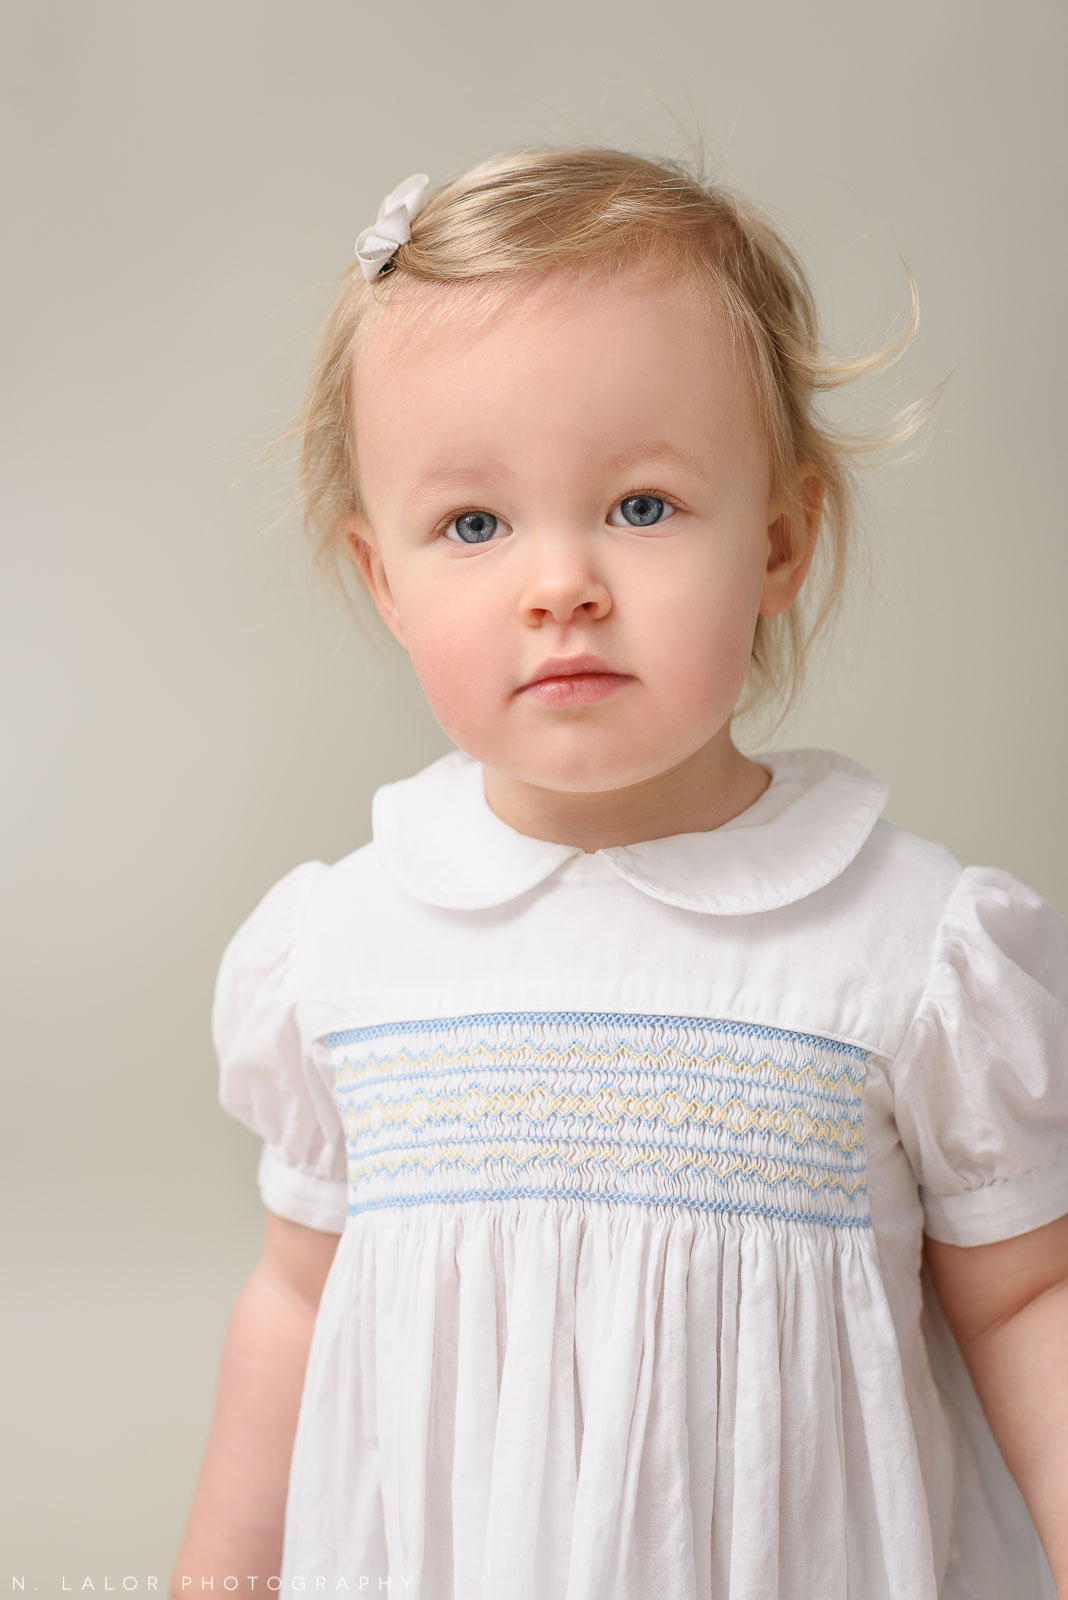 Soft portrait of a toddler girl. Studio portrait by N. Lalor Photography in Greenwich, Connecticut.